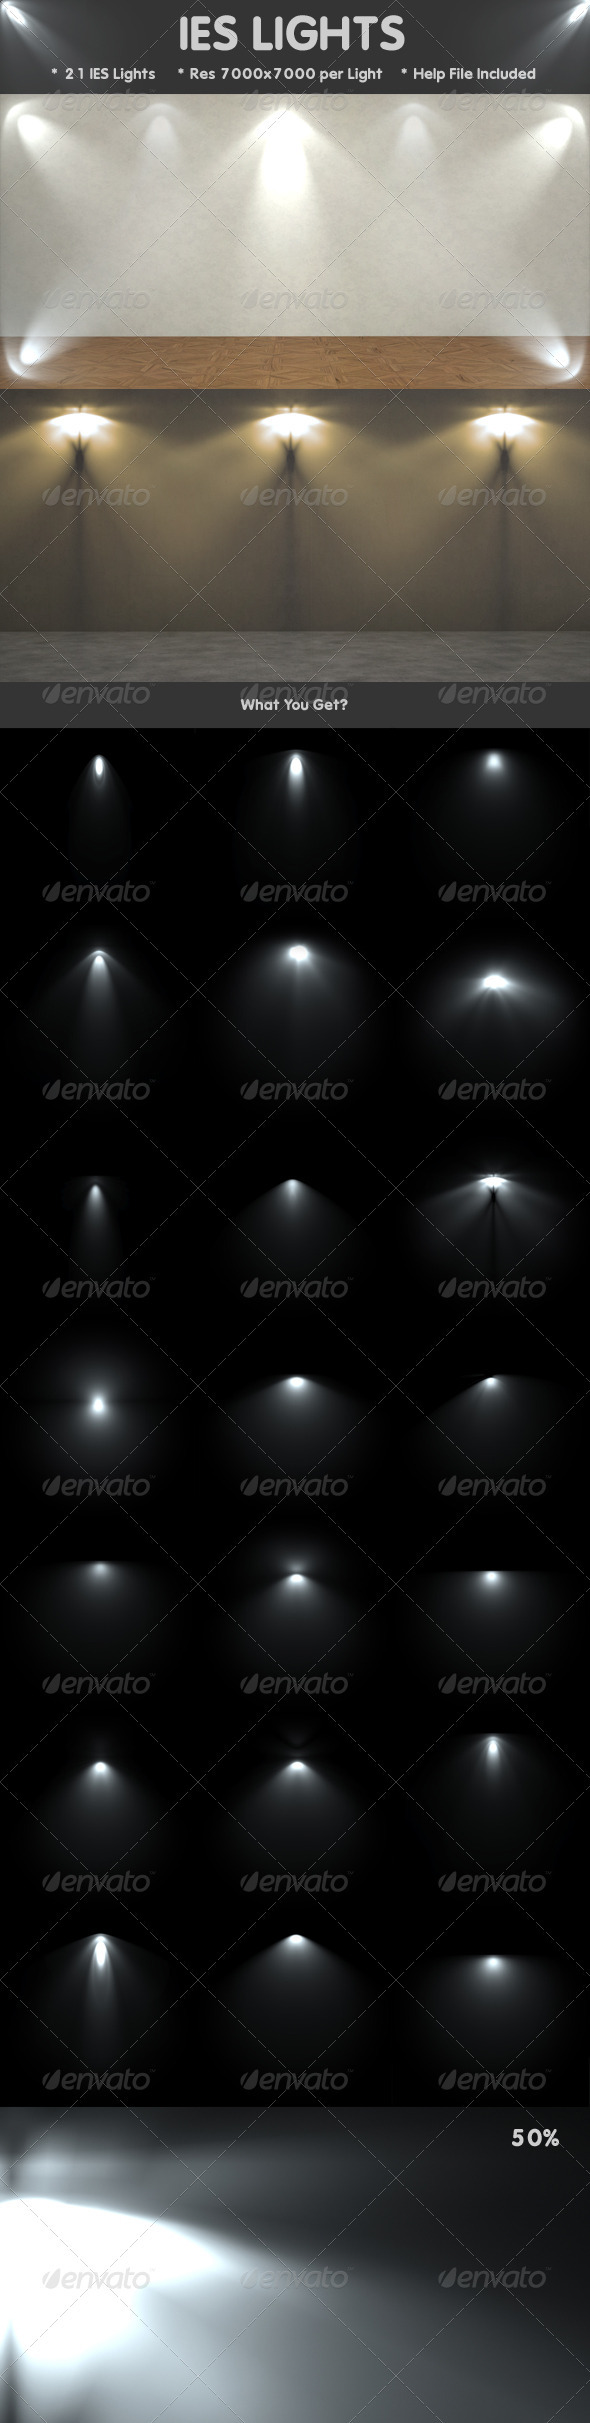 IES Lights - Decorative Graphics